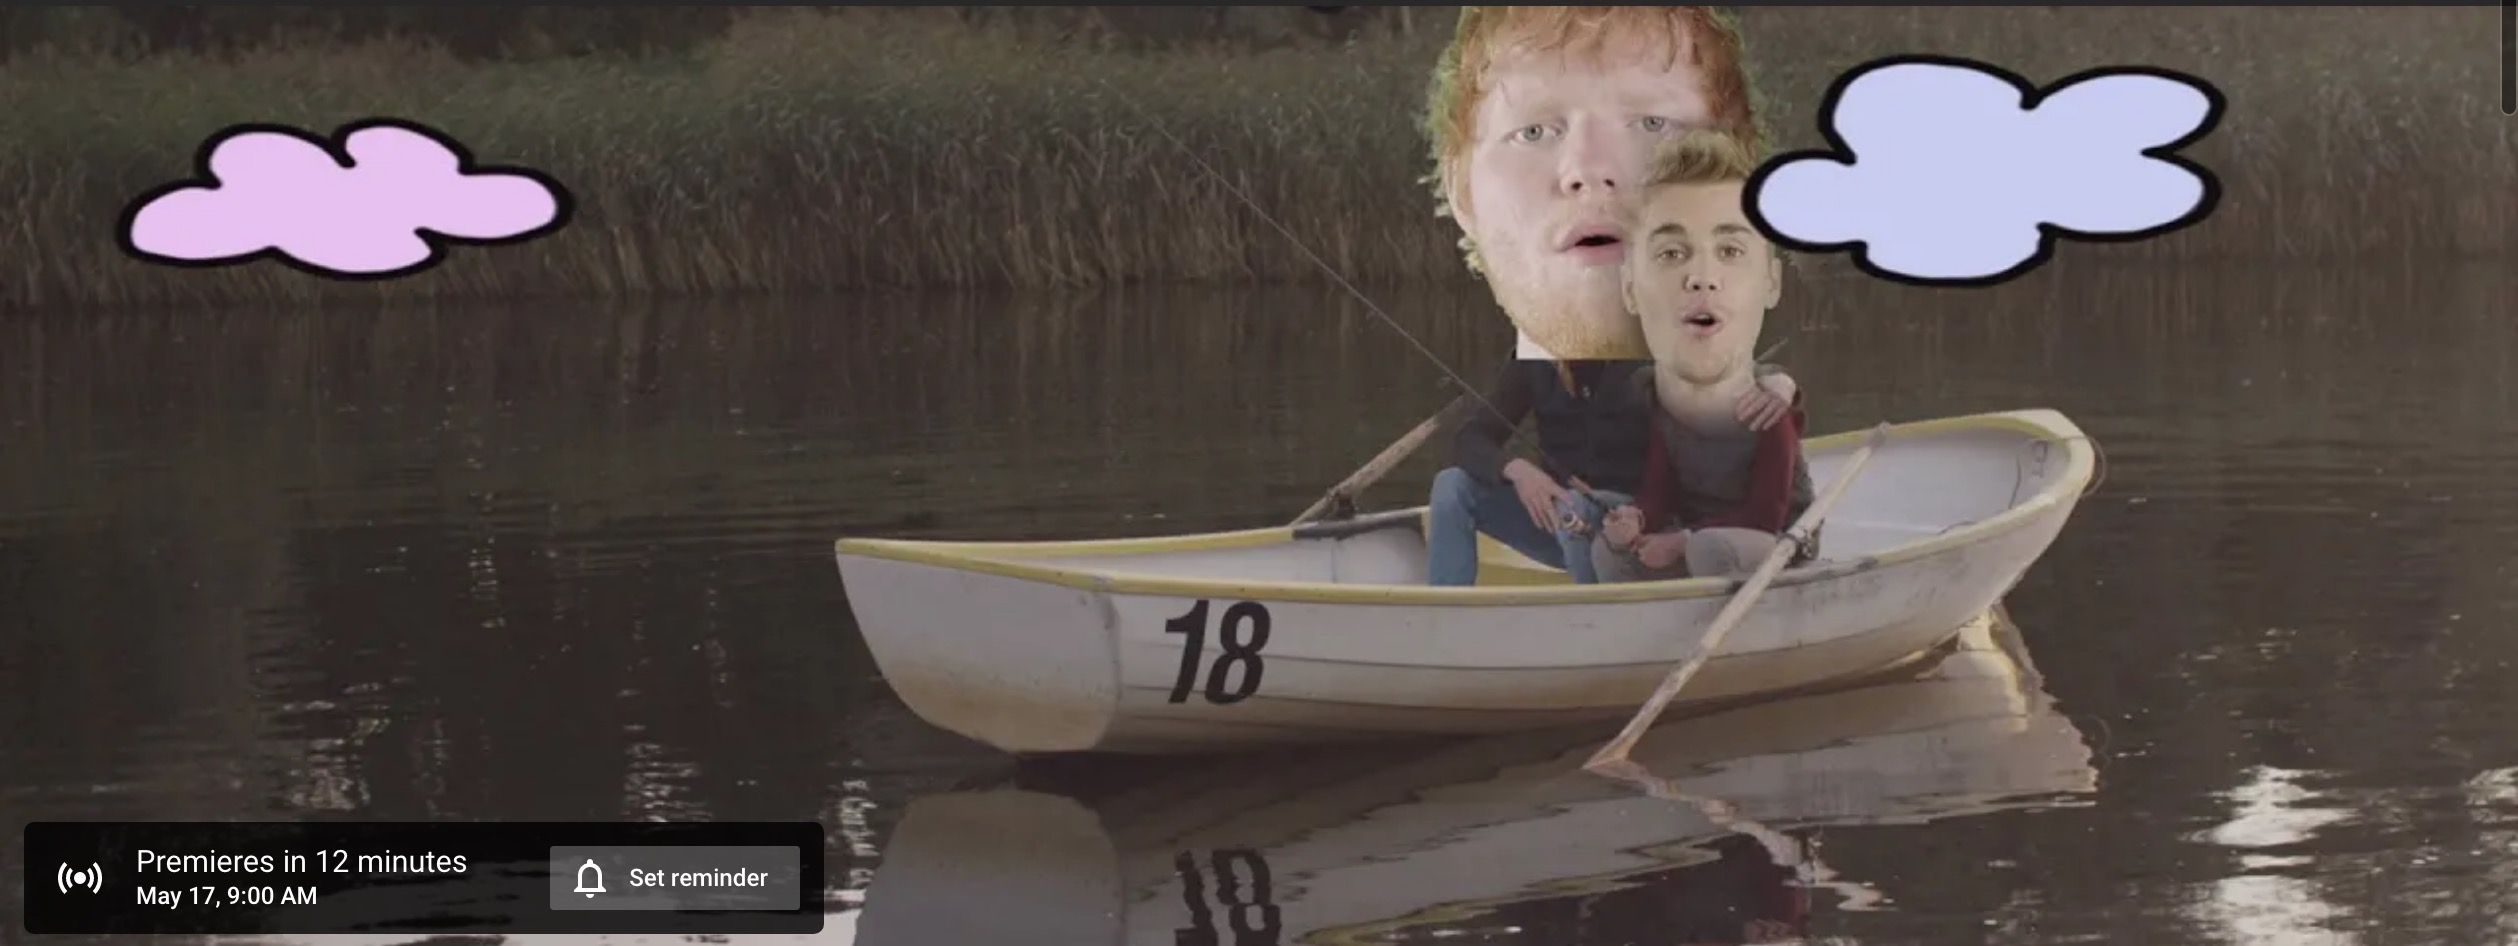 Ed Sheeran, Justin Bieber's Video for 'I Don't Care': Watch